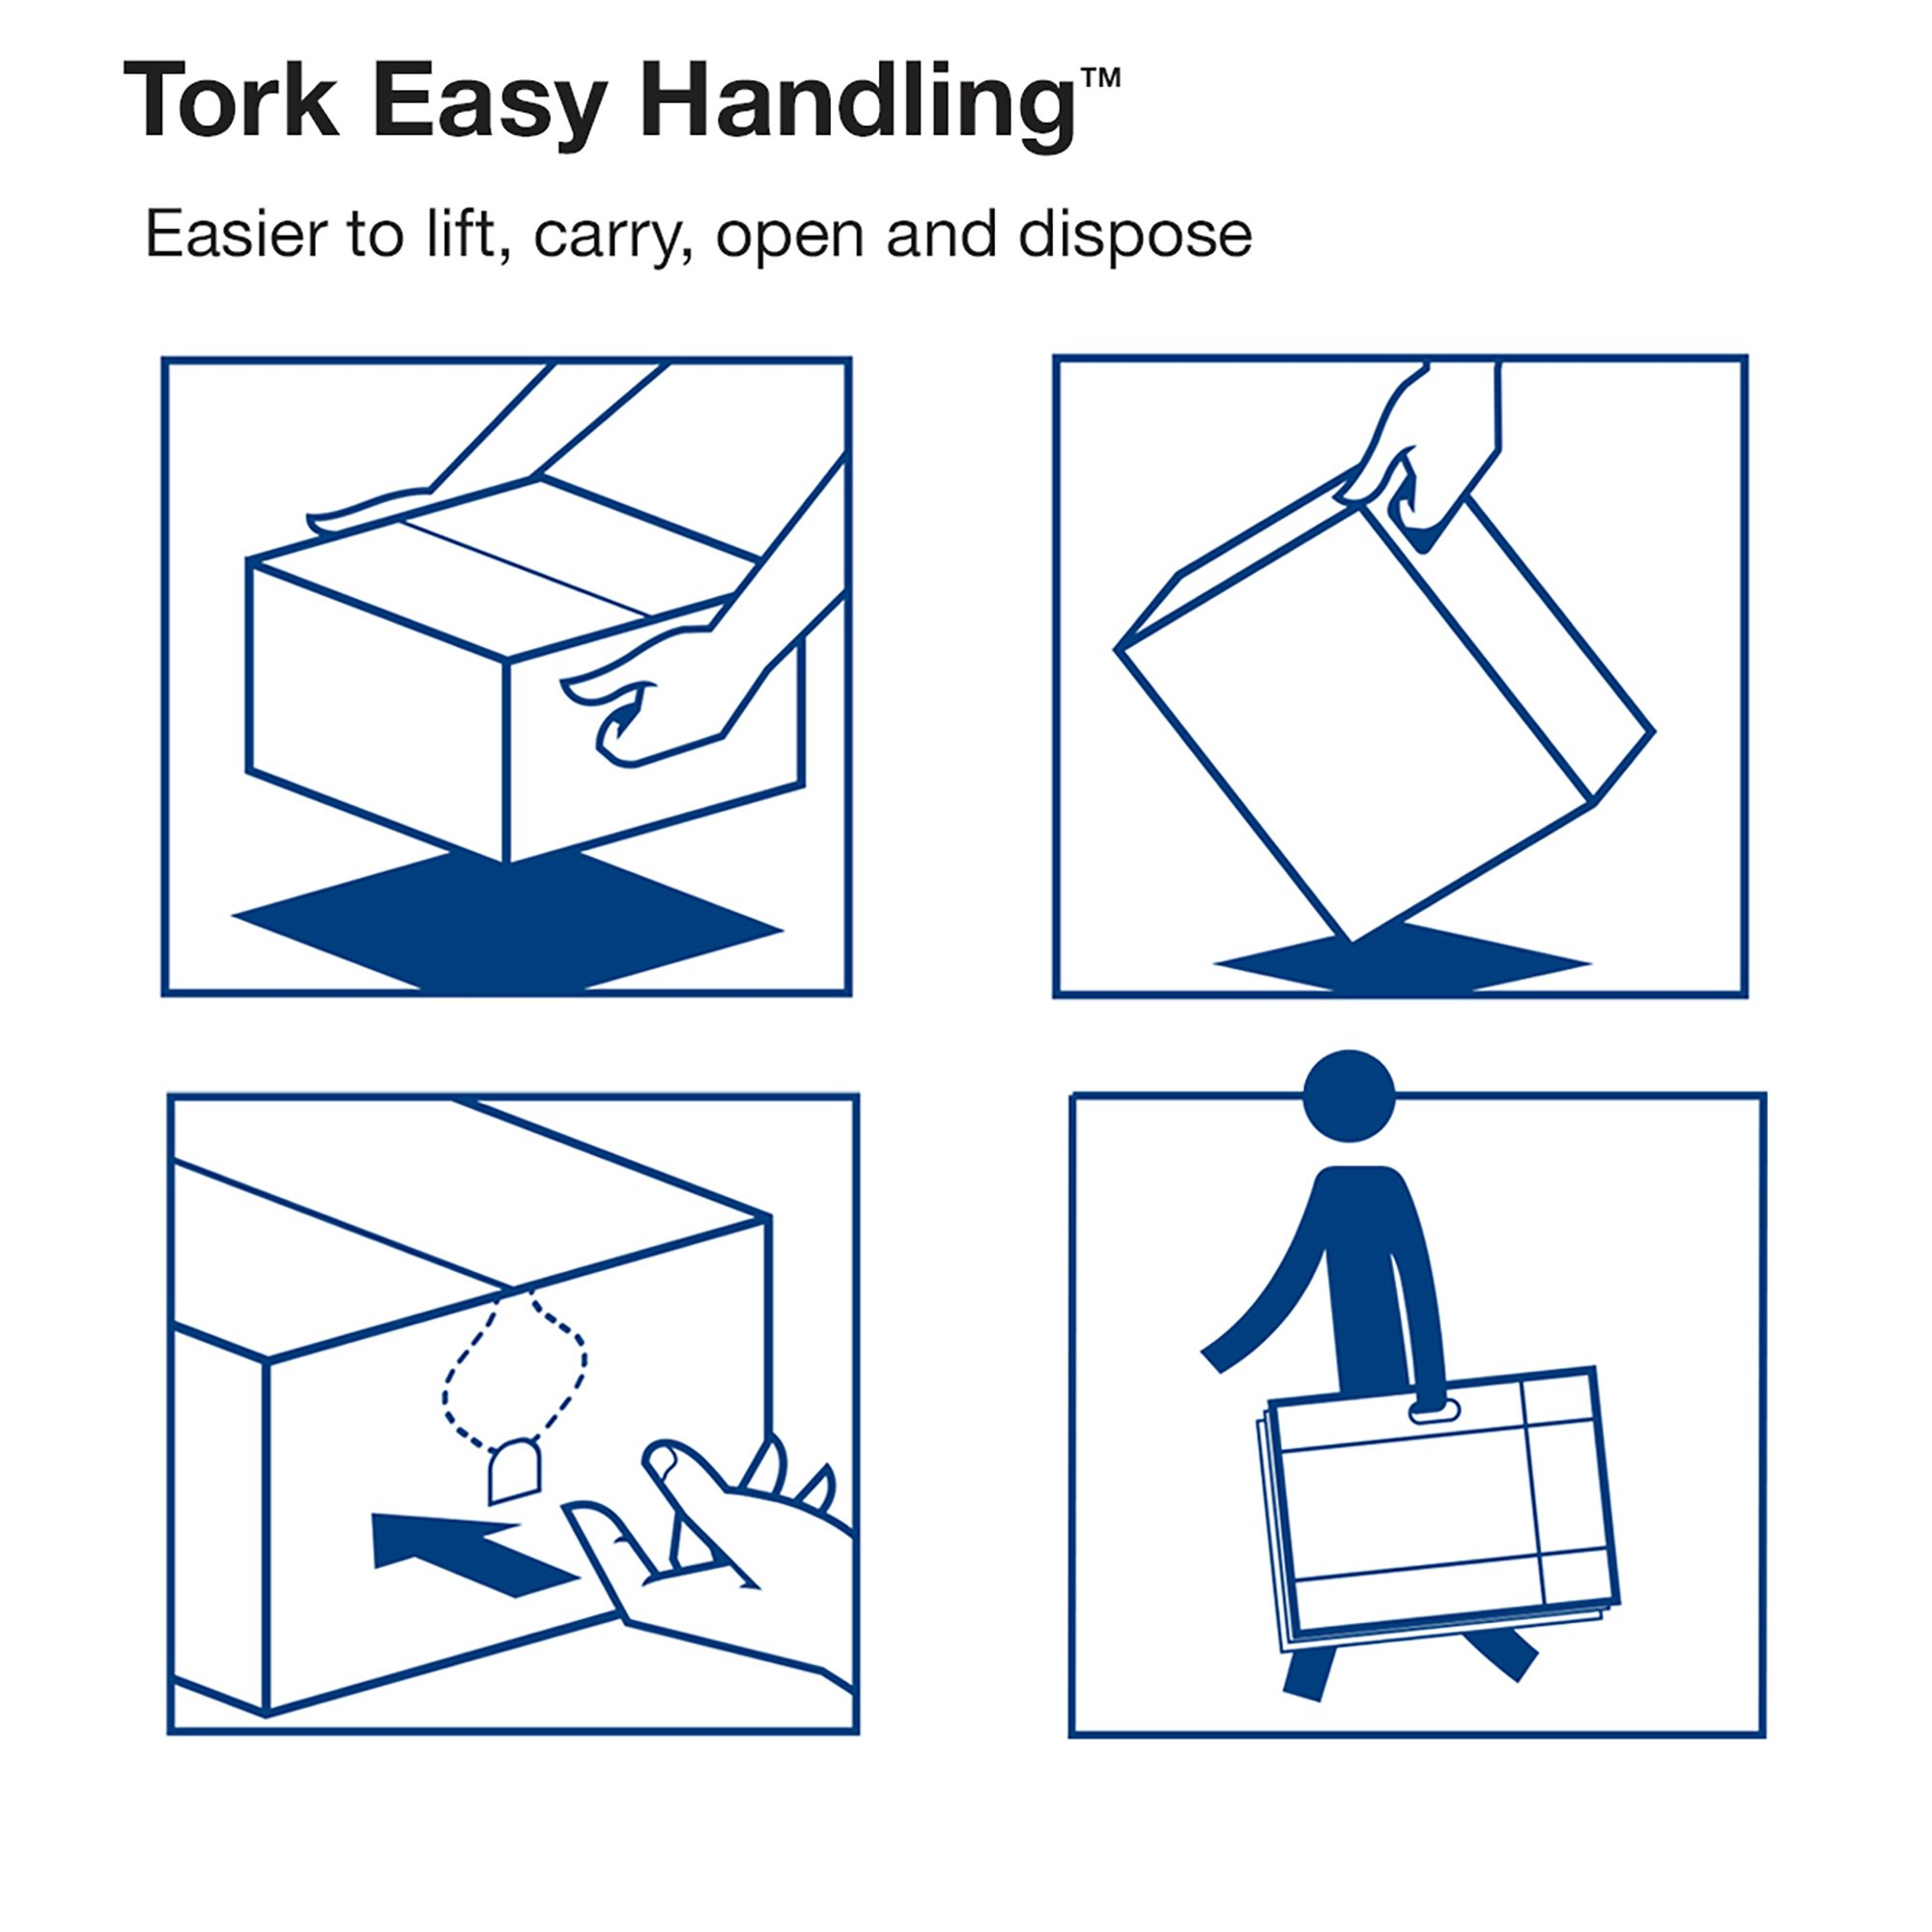 Tork Premium MB572 Soft Xpress Multifold Paper Hand Towel, 4-Panel, 2-Ply, 9.125'' Width x 3.625'' Length, White (Case of 32 Packs, 94 per Pack, 3,008 Towels) by Tork (Image #8)